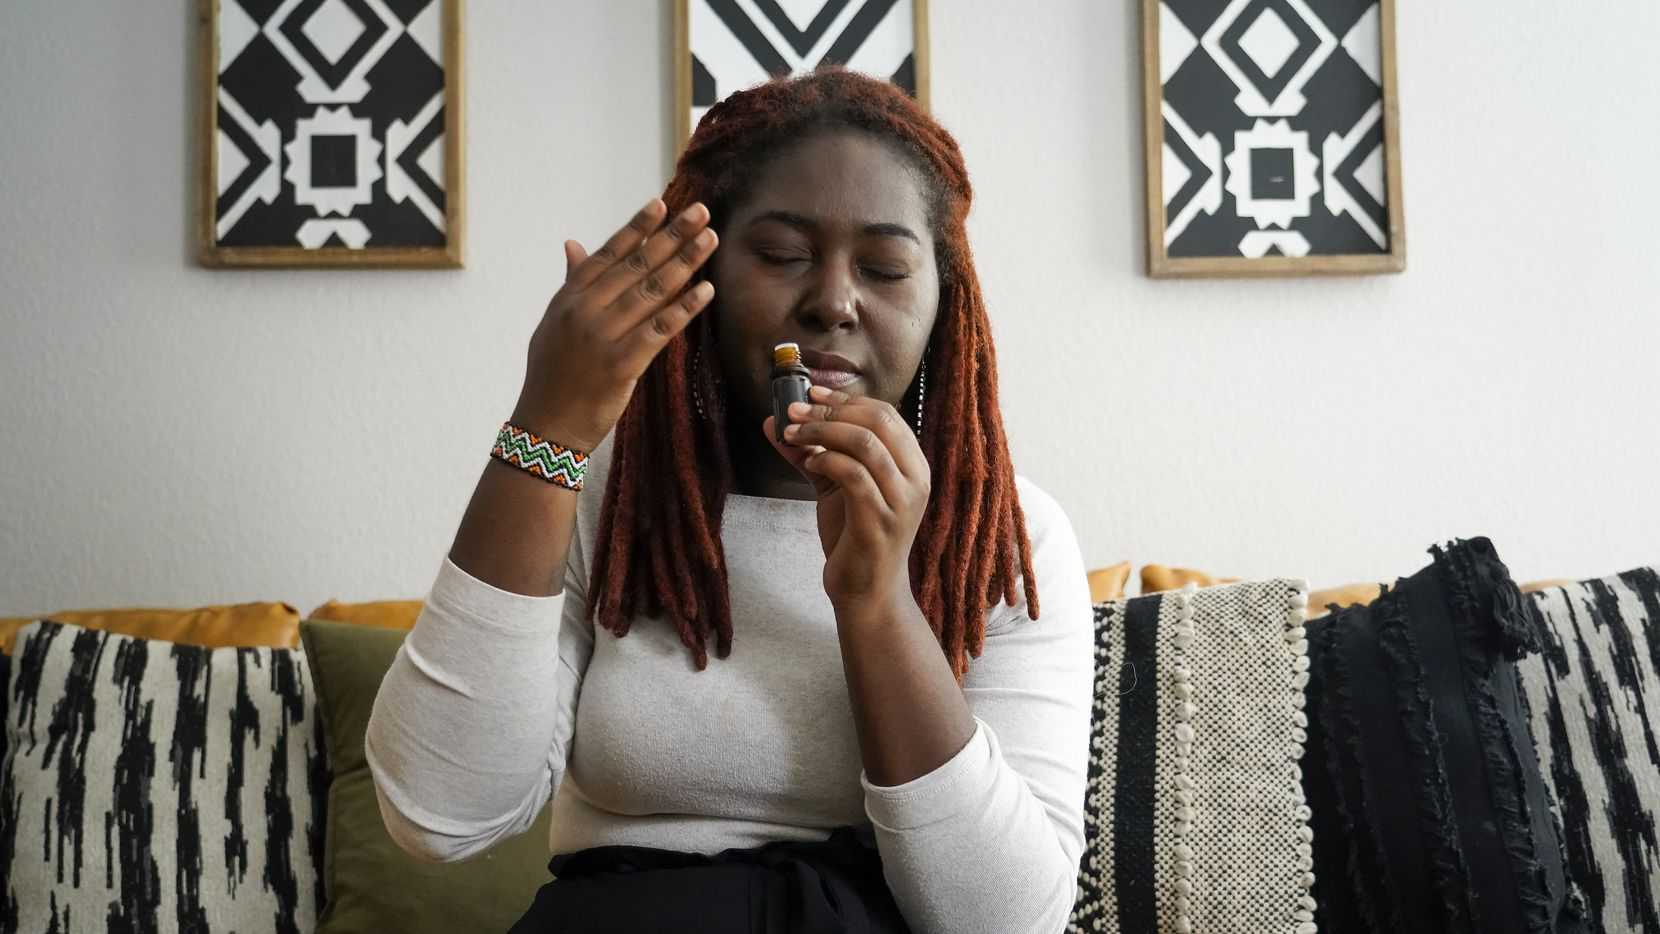 Tiffani Hutton practices smell training, a form of physical therapy for the nose. She inhales the aroma from essential oils in an effort to beat parosmia, a smell distortion triggered by COVID-19.